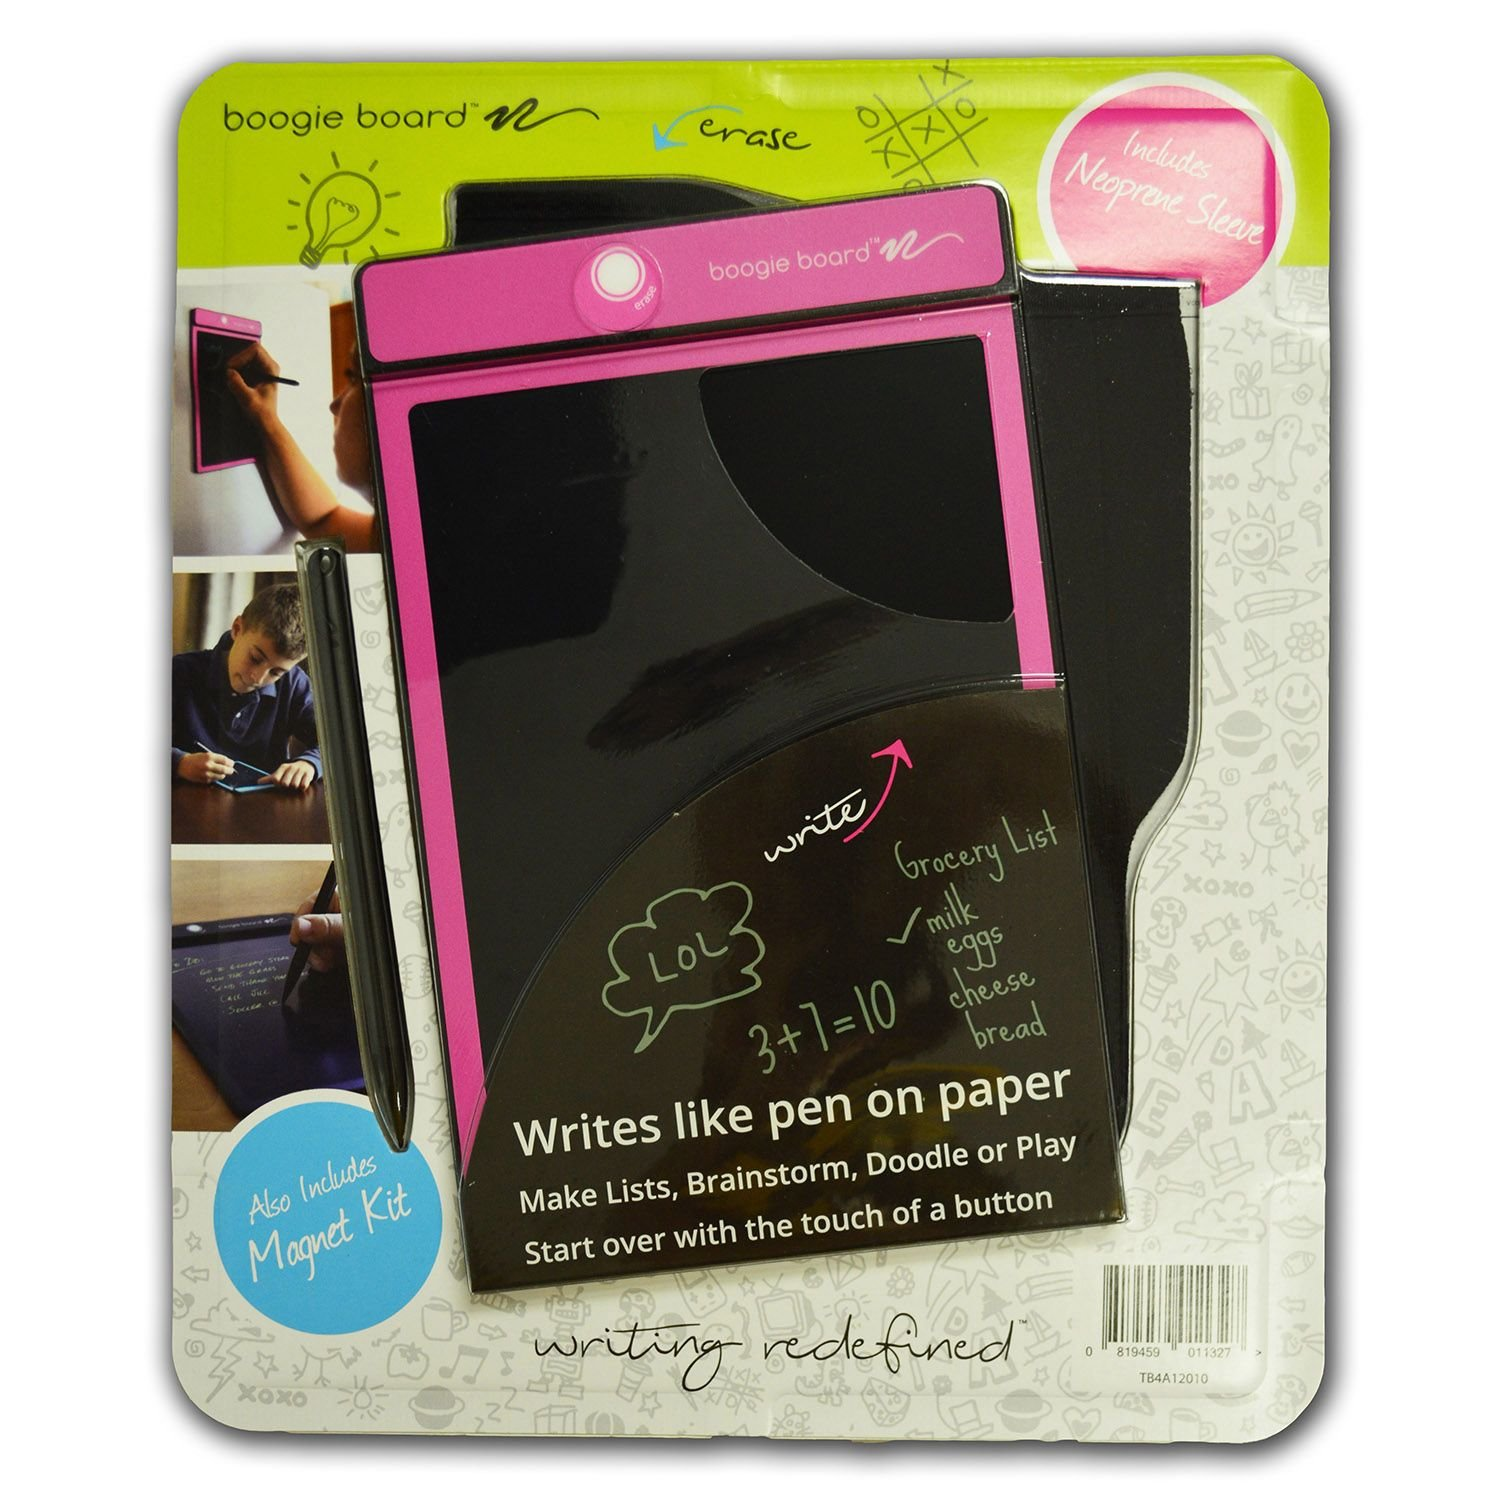 "Boogie Board E-Writer 8.5"" Paperless Memo Pad Tablet Pink with Neoprene Sleeve + Stylus"